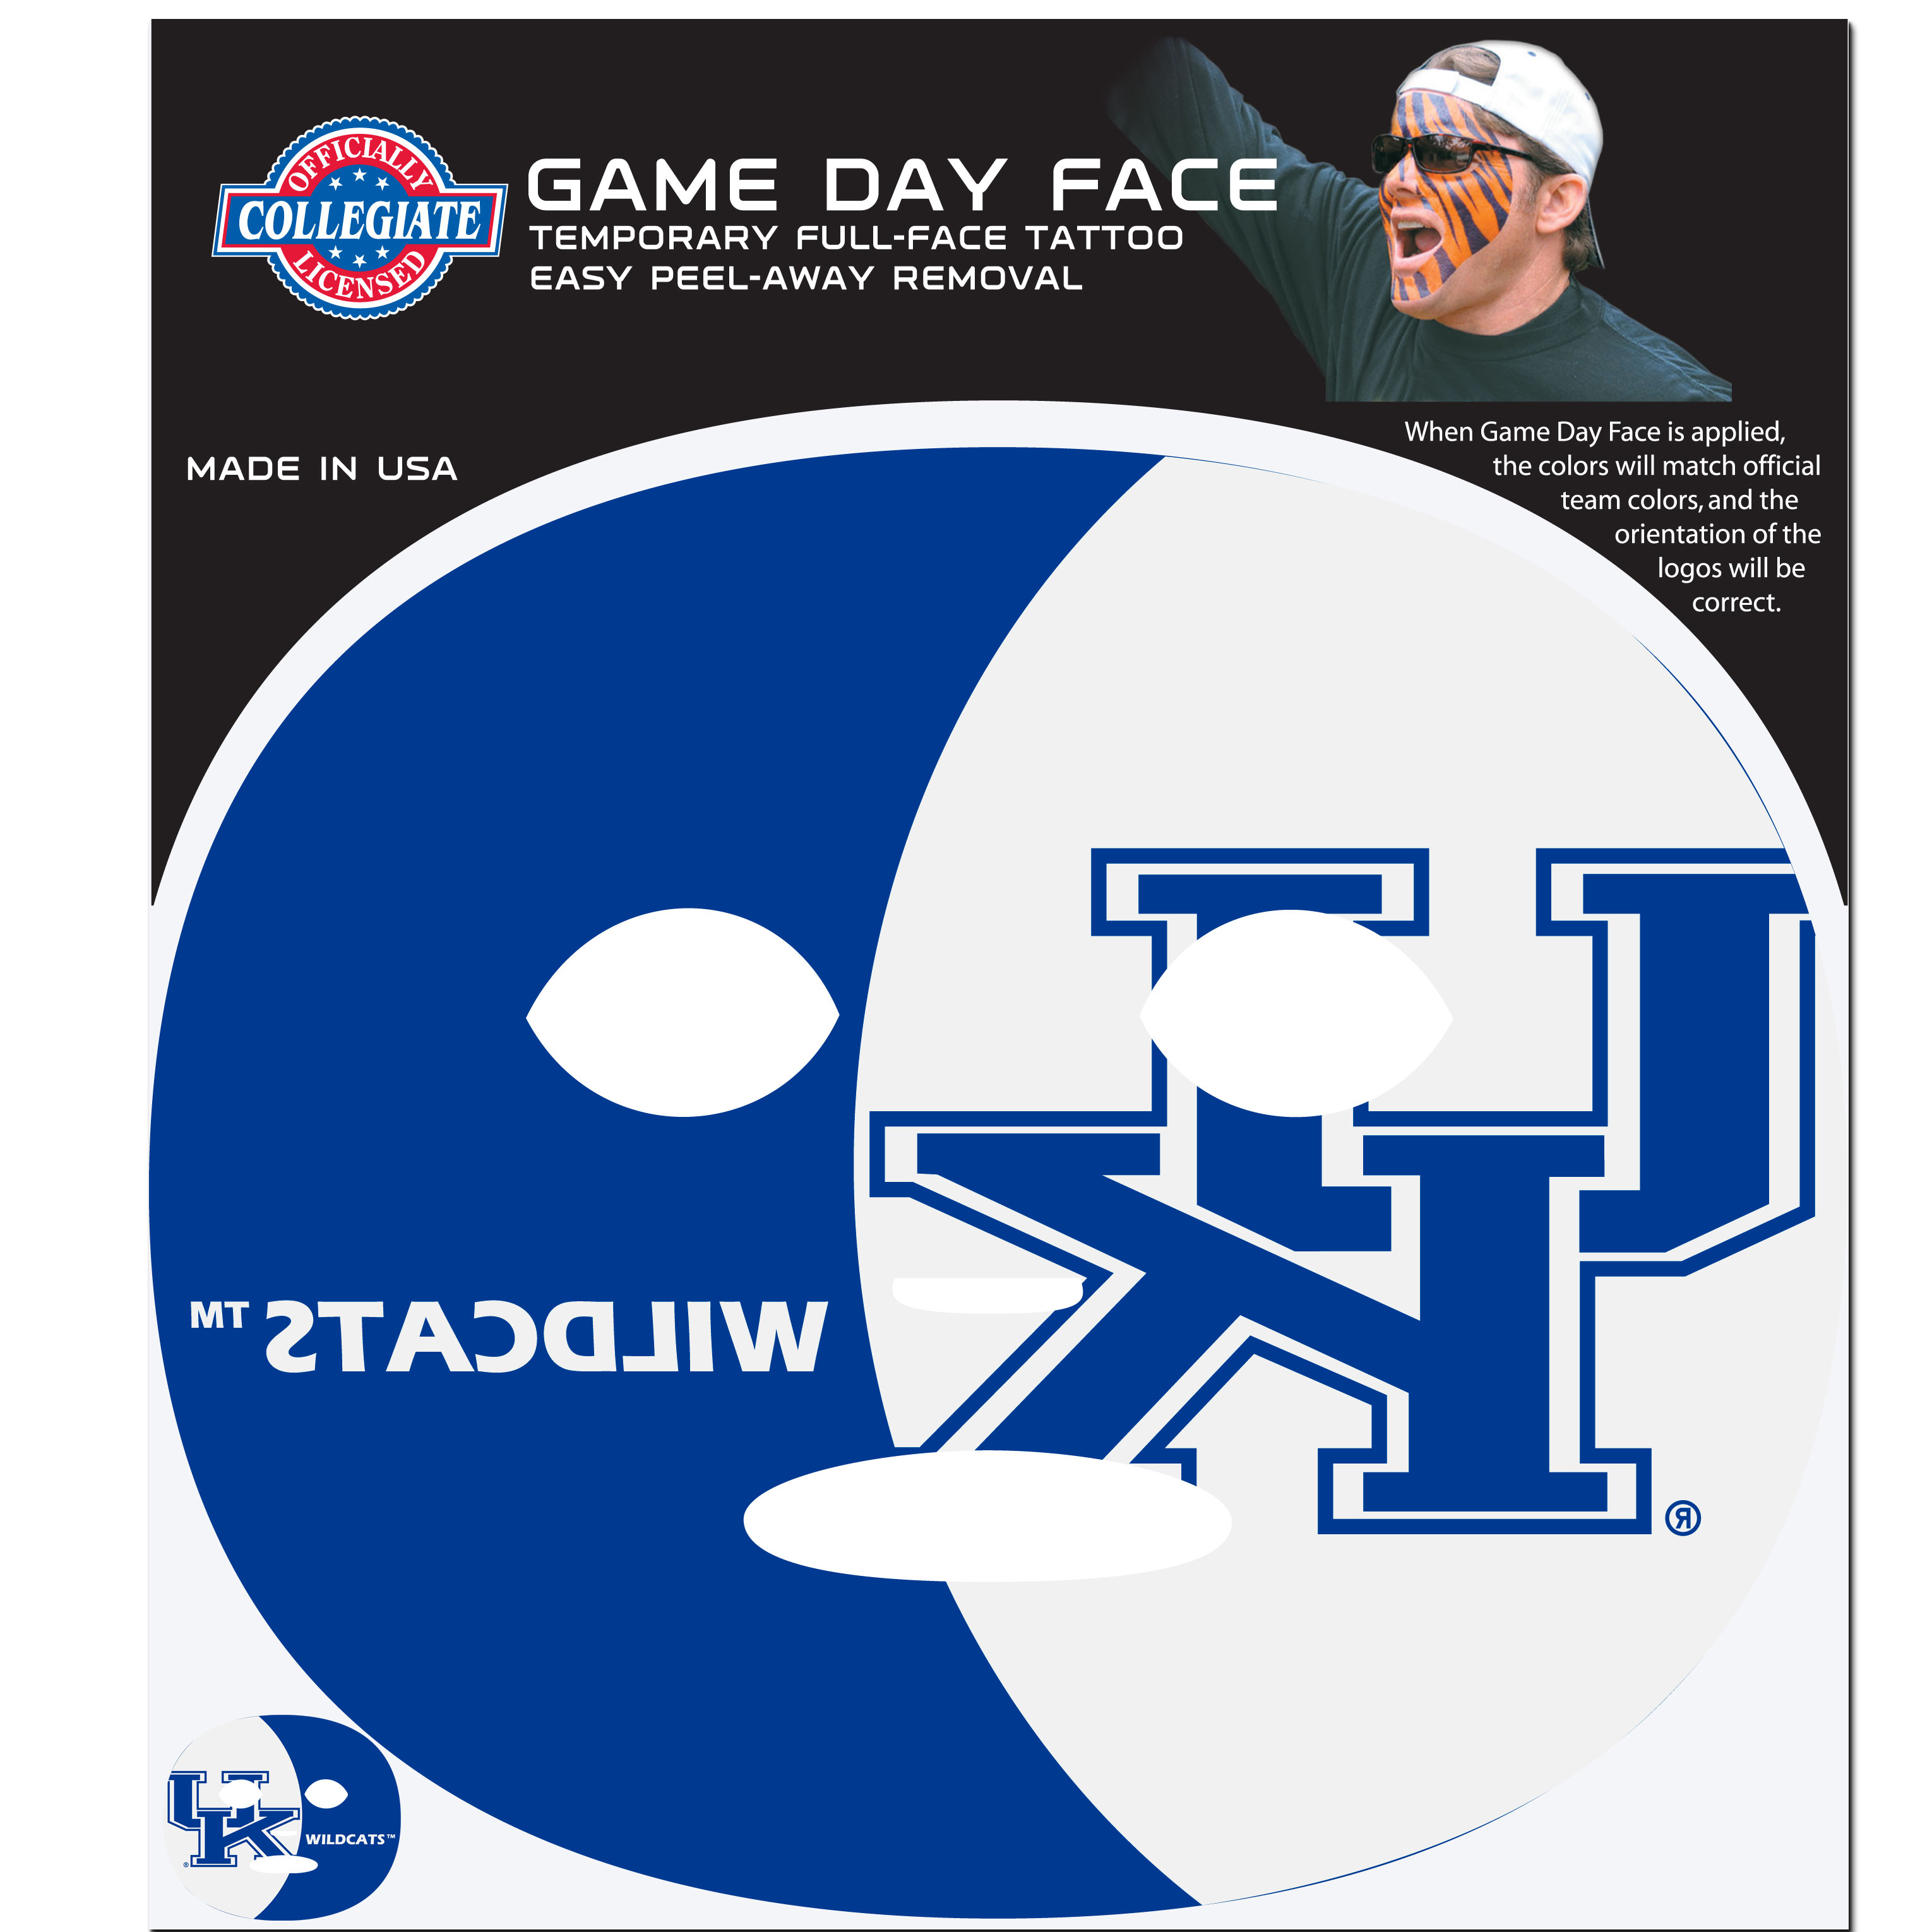 Kentucky Wildcats Set of 4 Game Day Faces - No better way to show your team pride than by painting your face. Siskiyou's Game Day Face Temporary Tattoo isn't your typical face paint. It is a water based application that doesn't smudge, smear or sweat off while you're wearing it and easily peels off after you're done celebrating your team's big Win! The temporary tattoo is large enough to trim down to fit your face. Our Game Day Face Temporary Tattoo's are fun for fans of all ages. You may have seen our product before, these are the same Temporary Face Tattoos as pitched on ABC's Shark Tank.